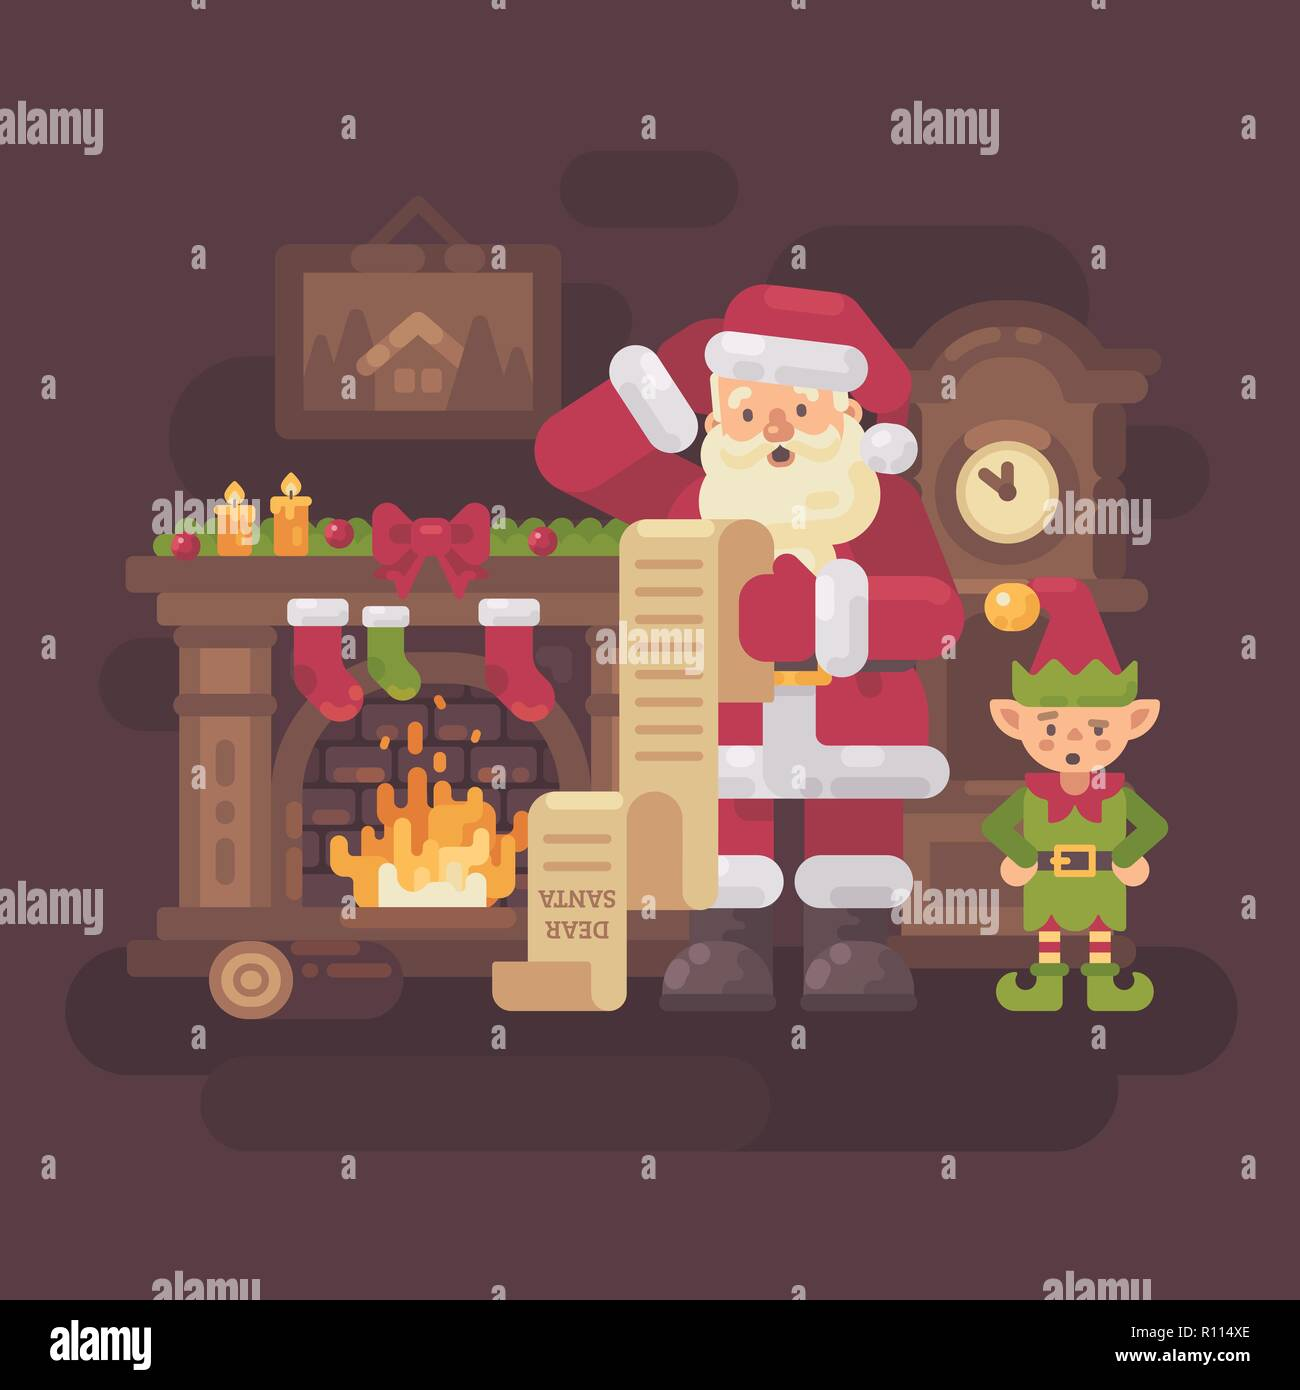 Confused Santa Claus and elf reading a very long kids letter in a cozy room with a fireplace and grandfather clock. Christmas flat illustration - Stock Vector